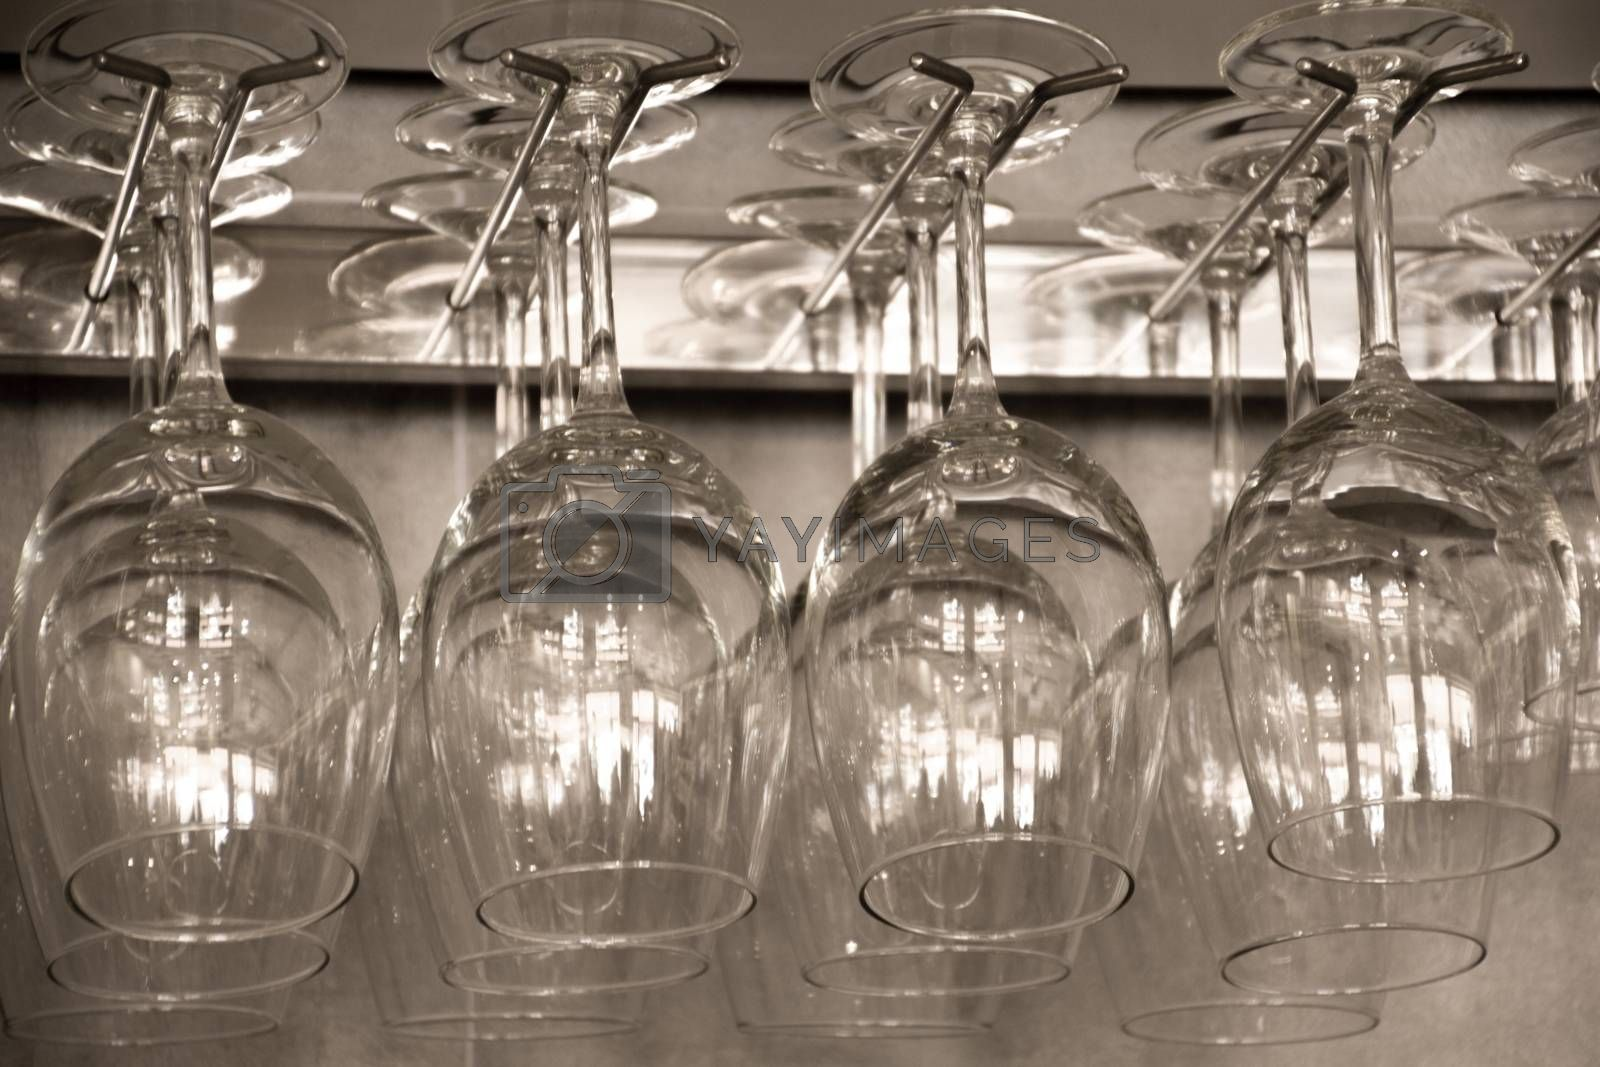 some glass cups hanging from a metal hook upside down